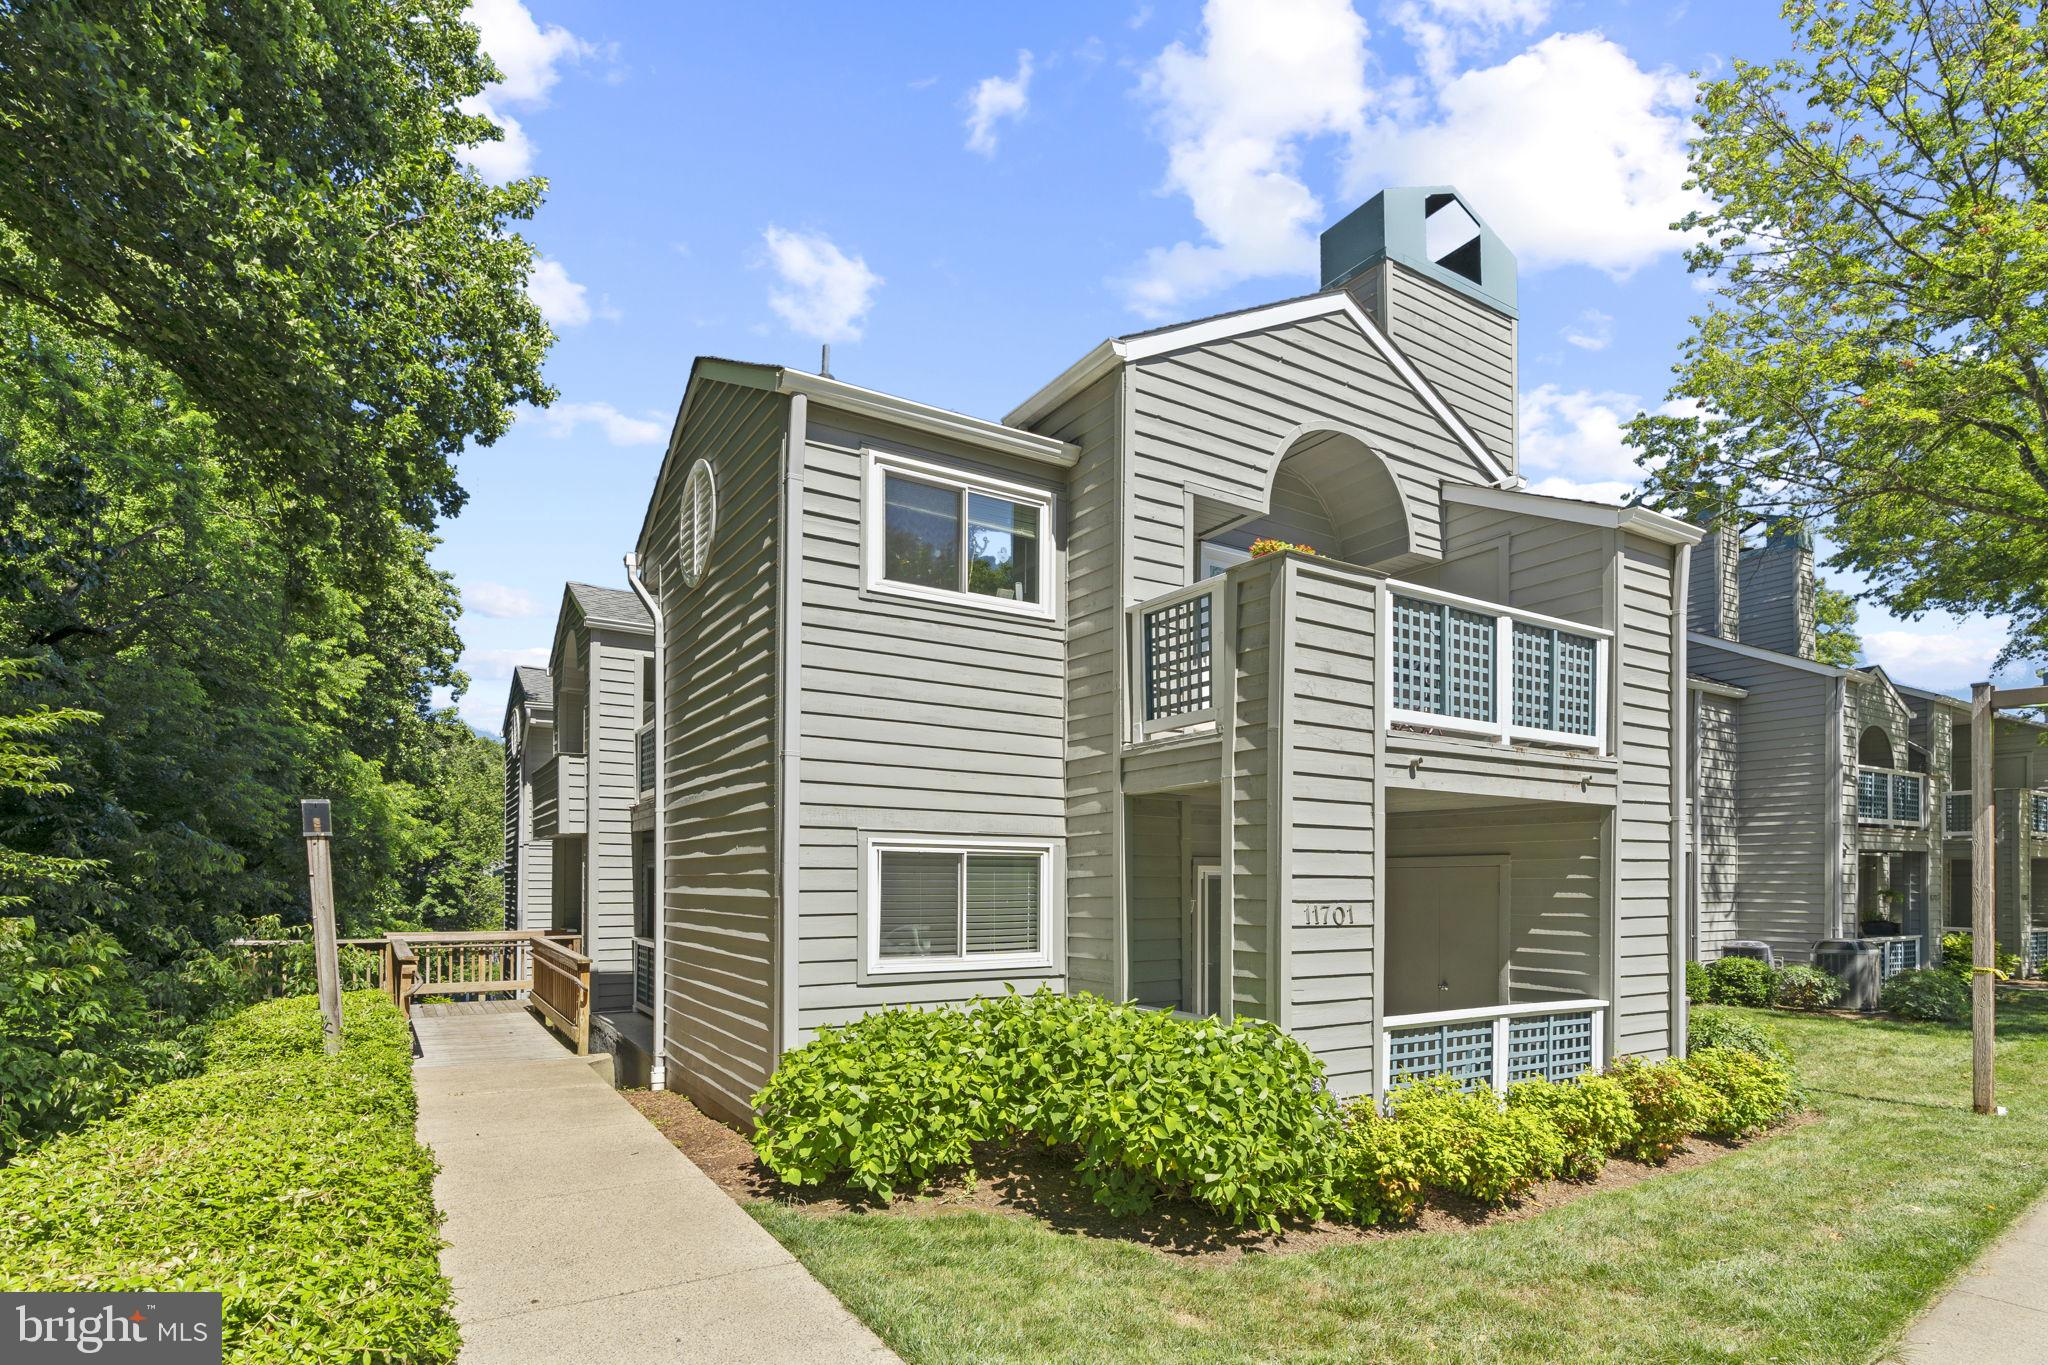 Spacious (1042 Sq Ft) 2bed/2bath in the highly sought after neighborhood of Summeridge in Reston! Ma